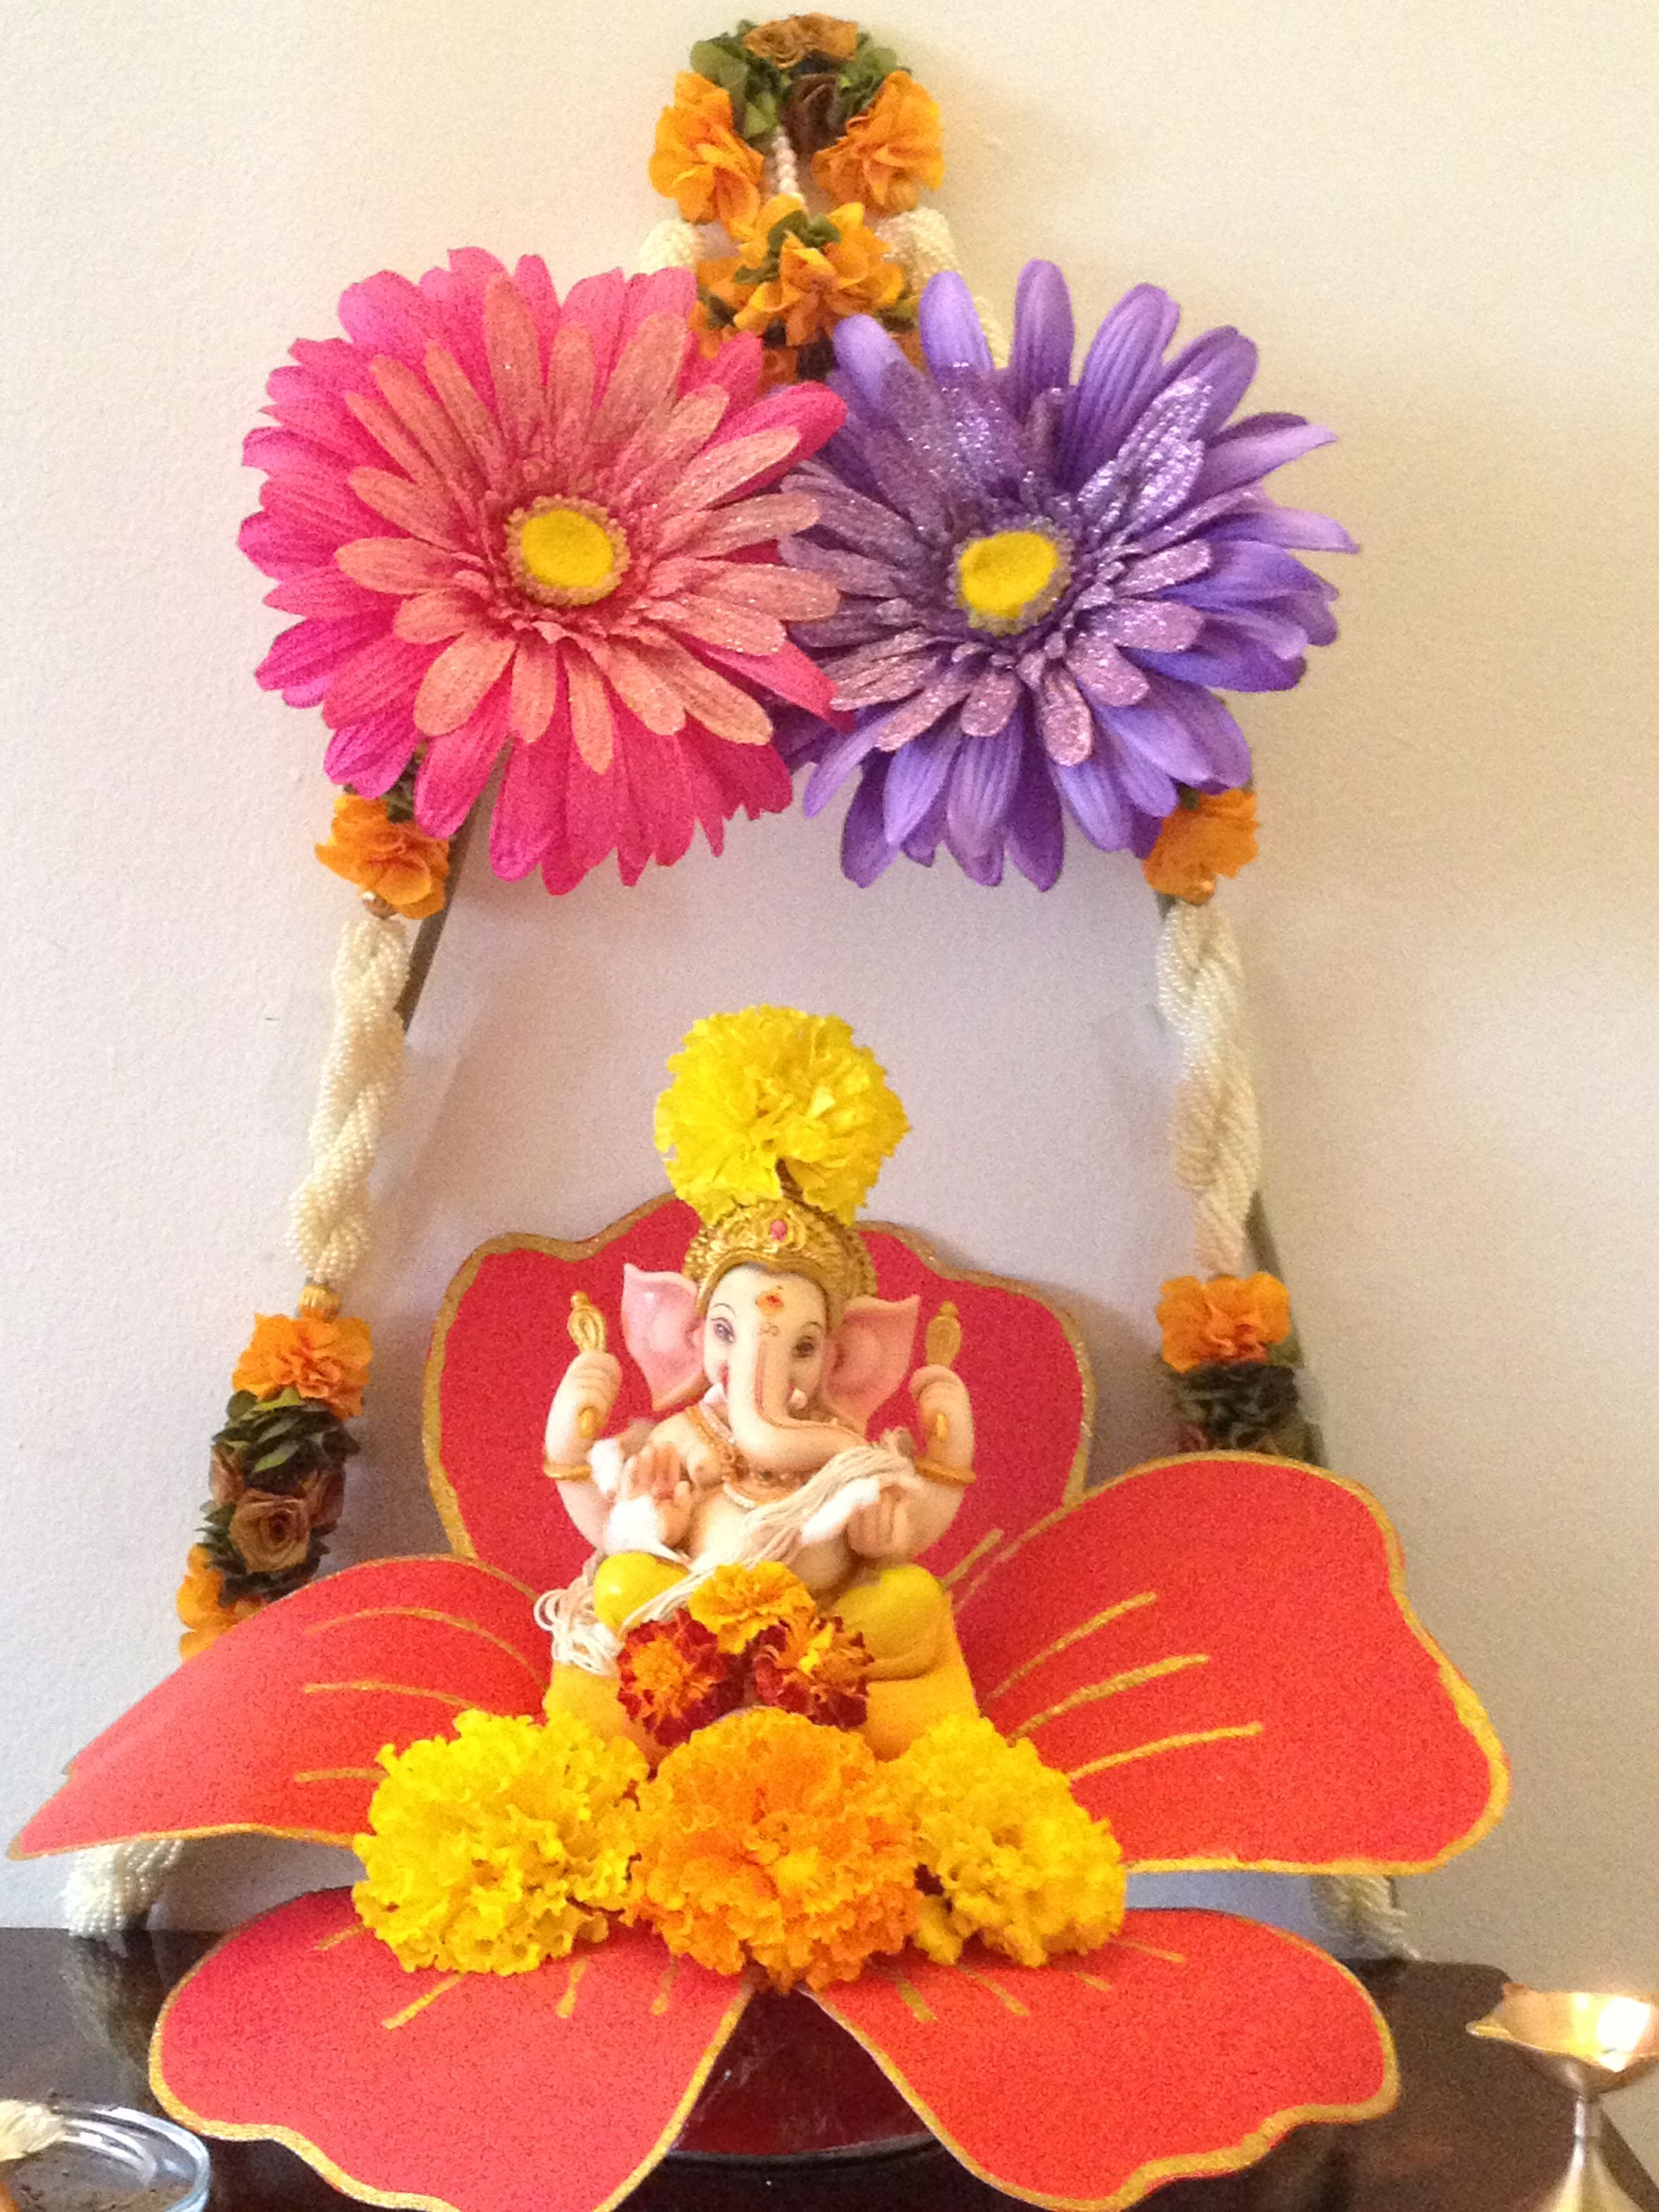 Indian Festival Decoration 100 Home Ganpati Decorations Ideas Pictures Part 2 3 Ganpati